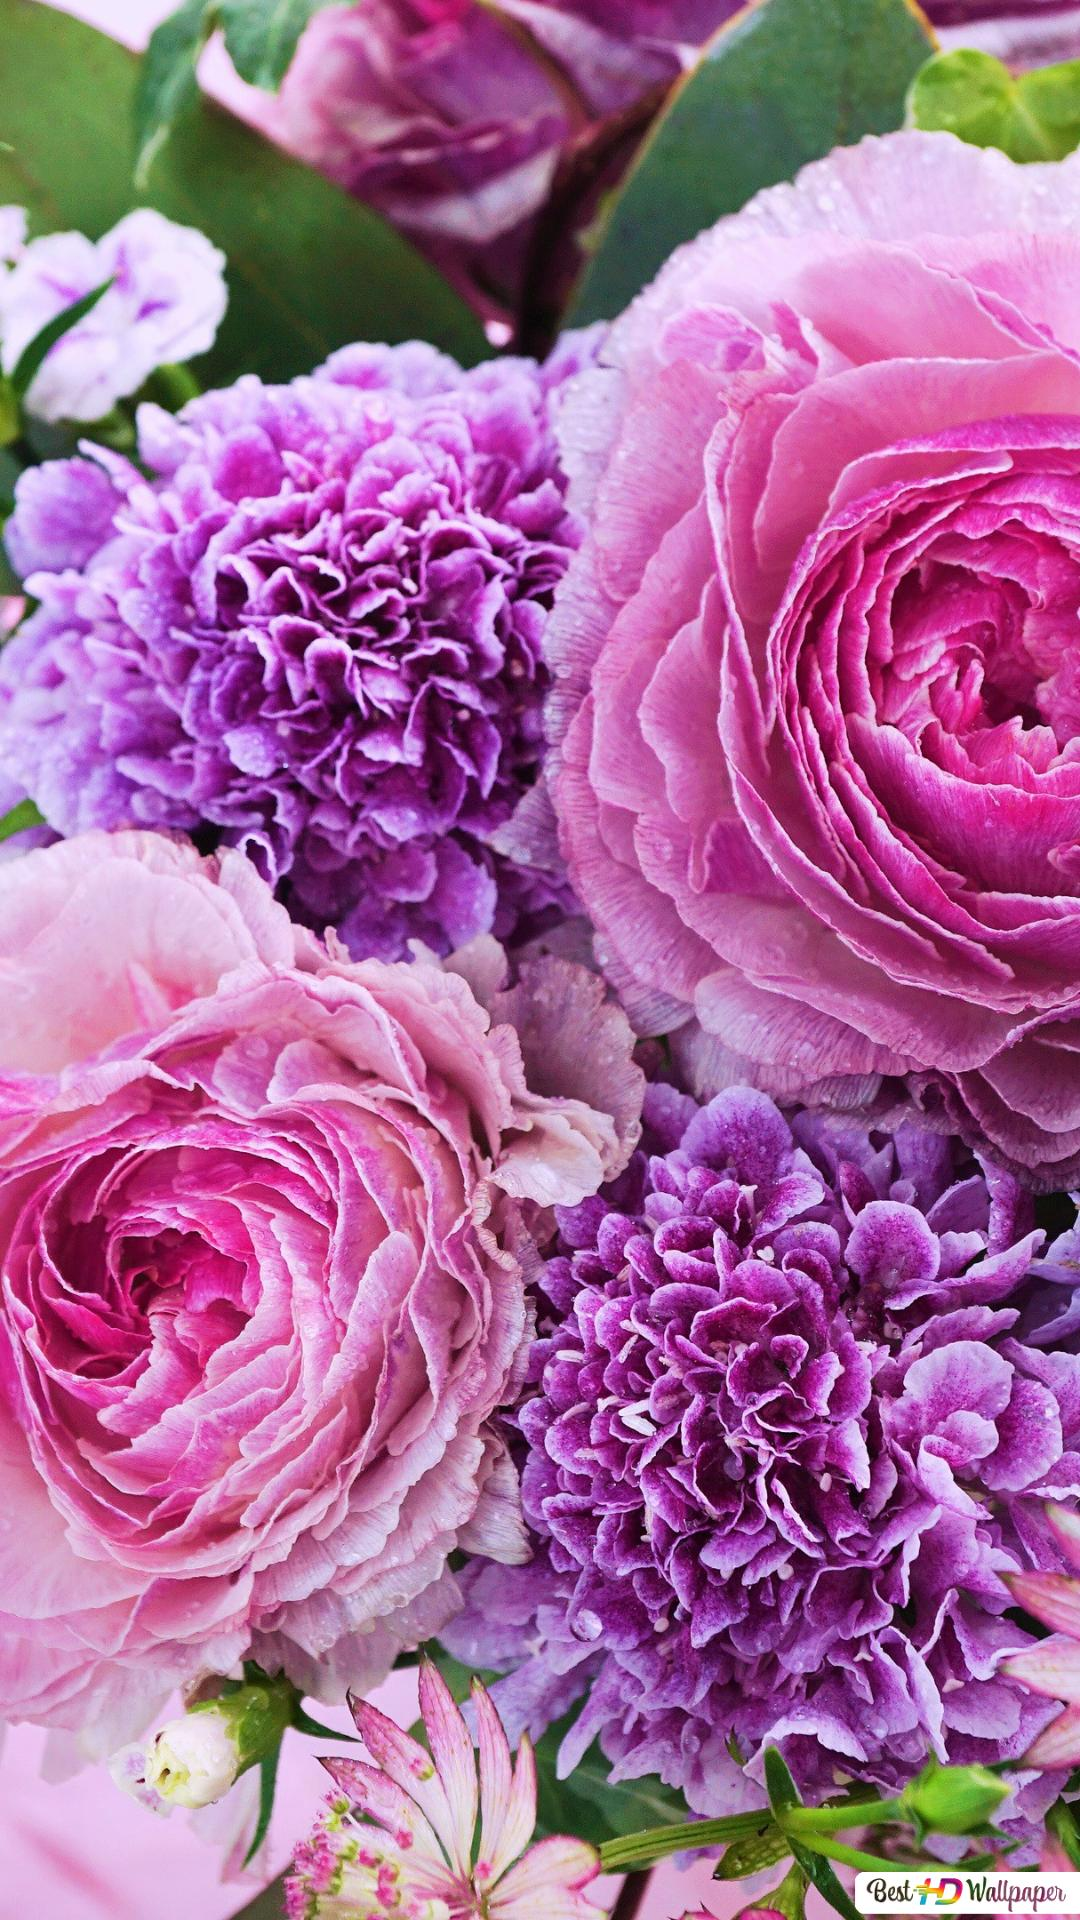 Un Bouquet Di Fiori Rosa Download Di Sfondi Hd